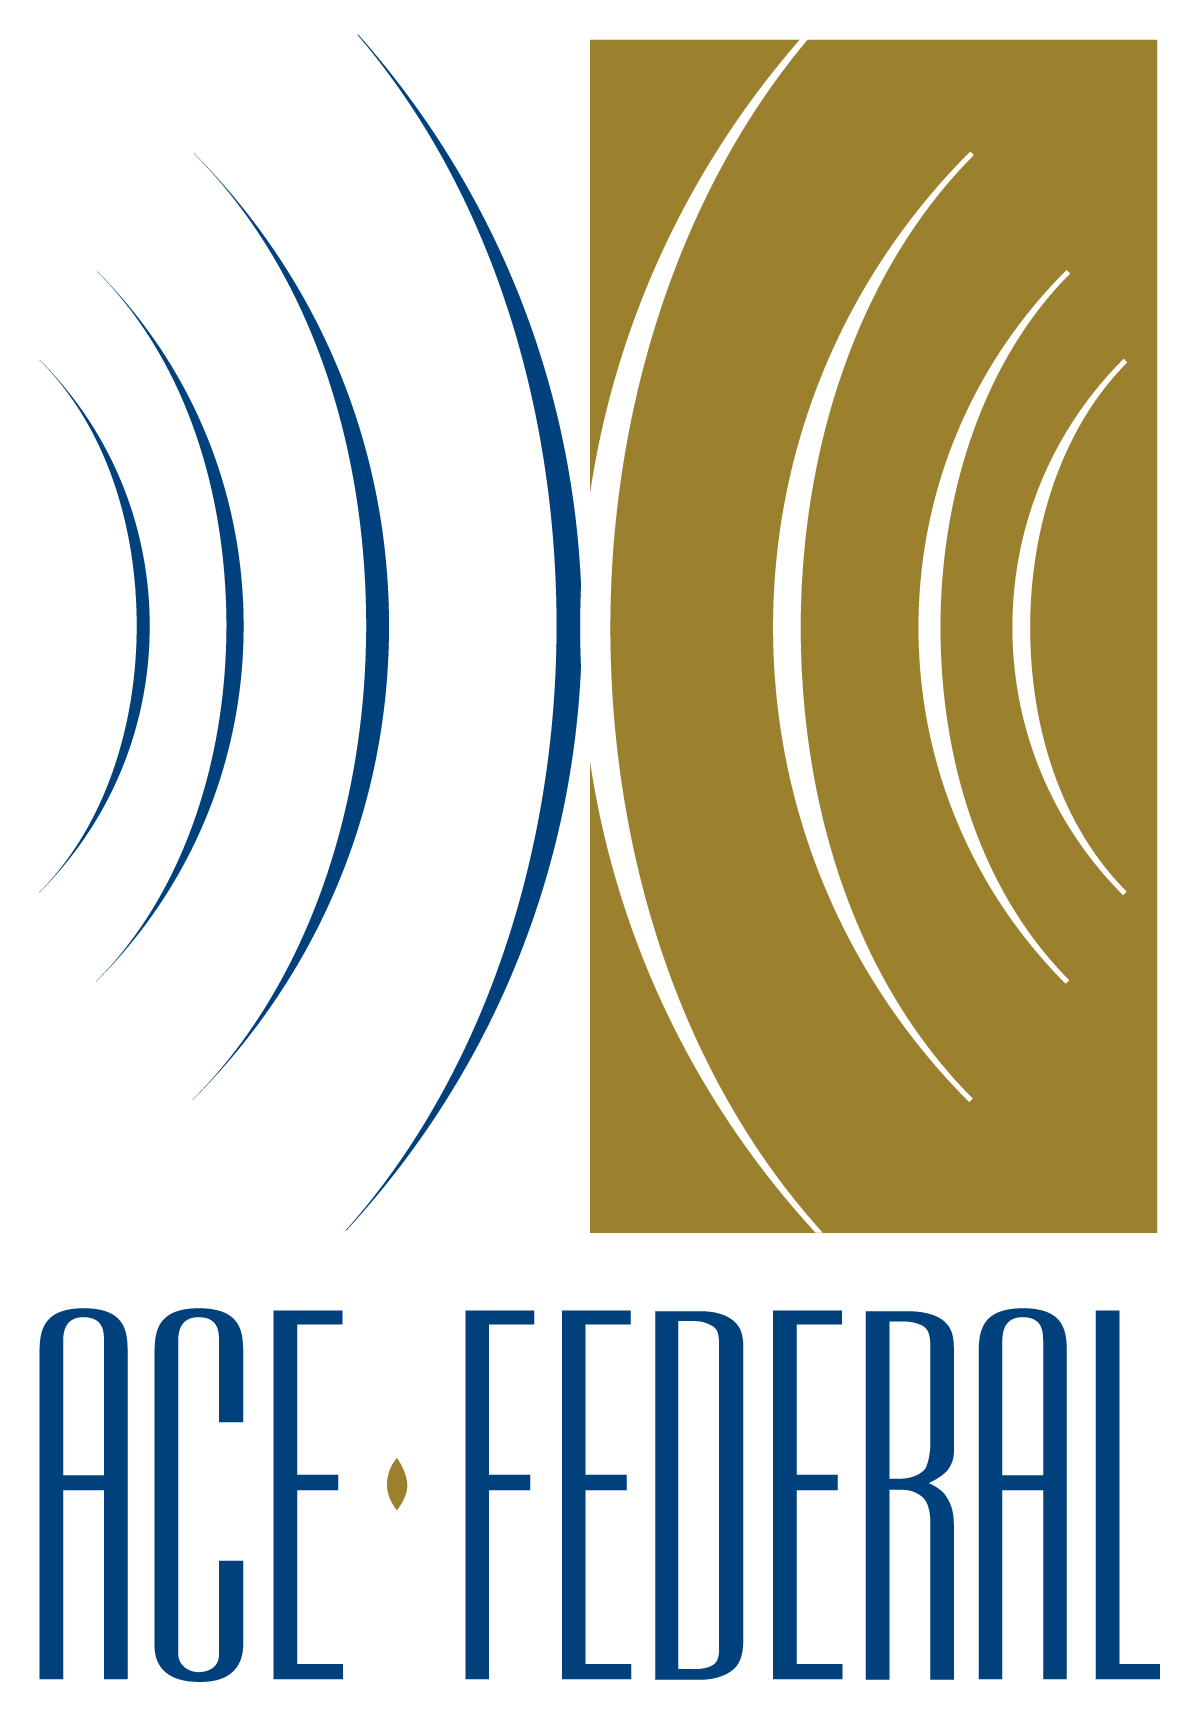 Court Reporter in Washington DC | Ace-Federal Reporters, Court Reporters & Legal Videography